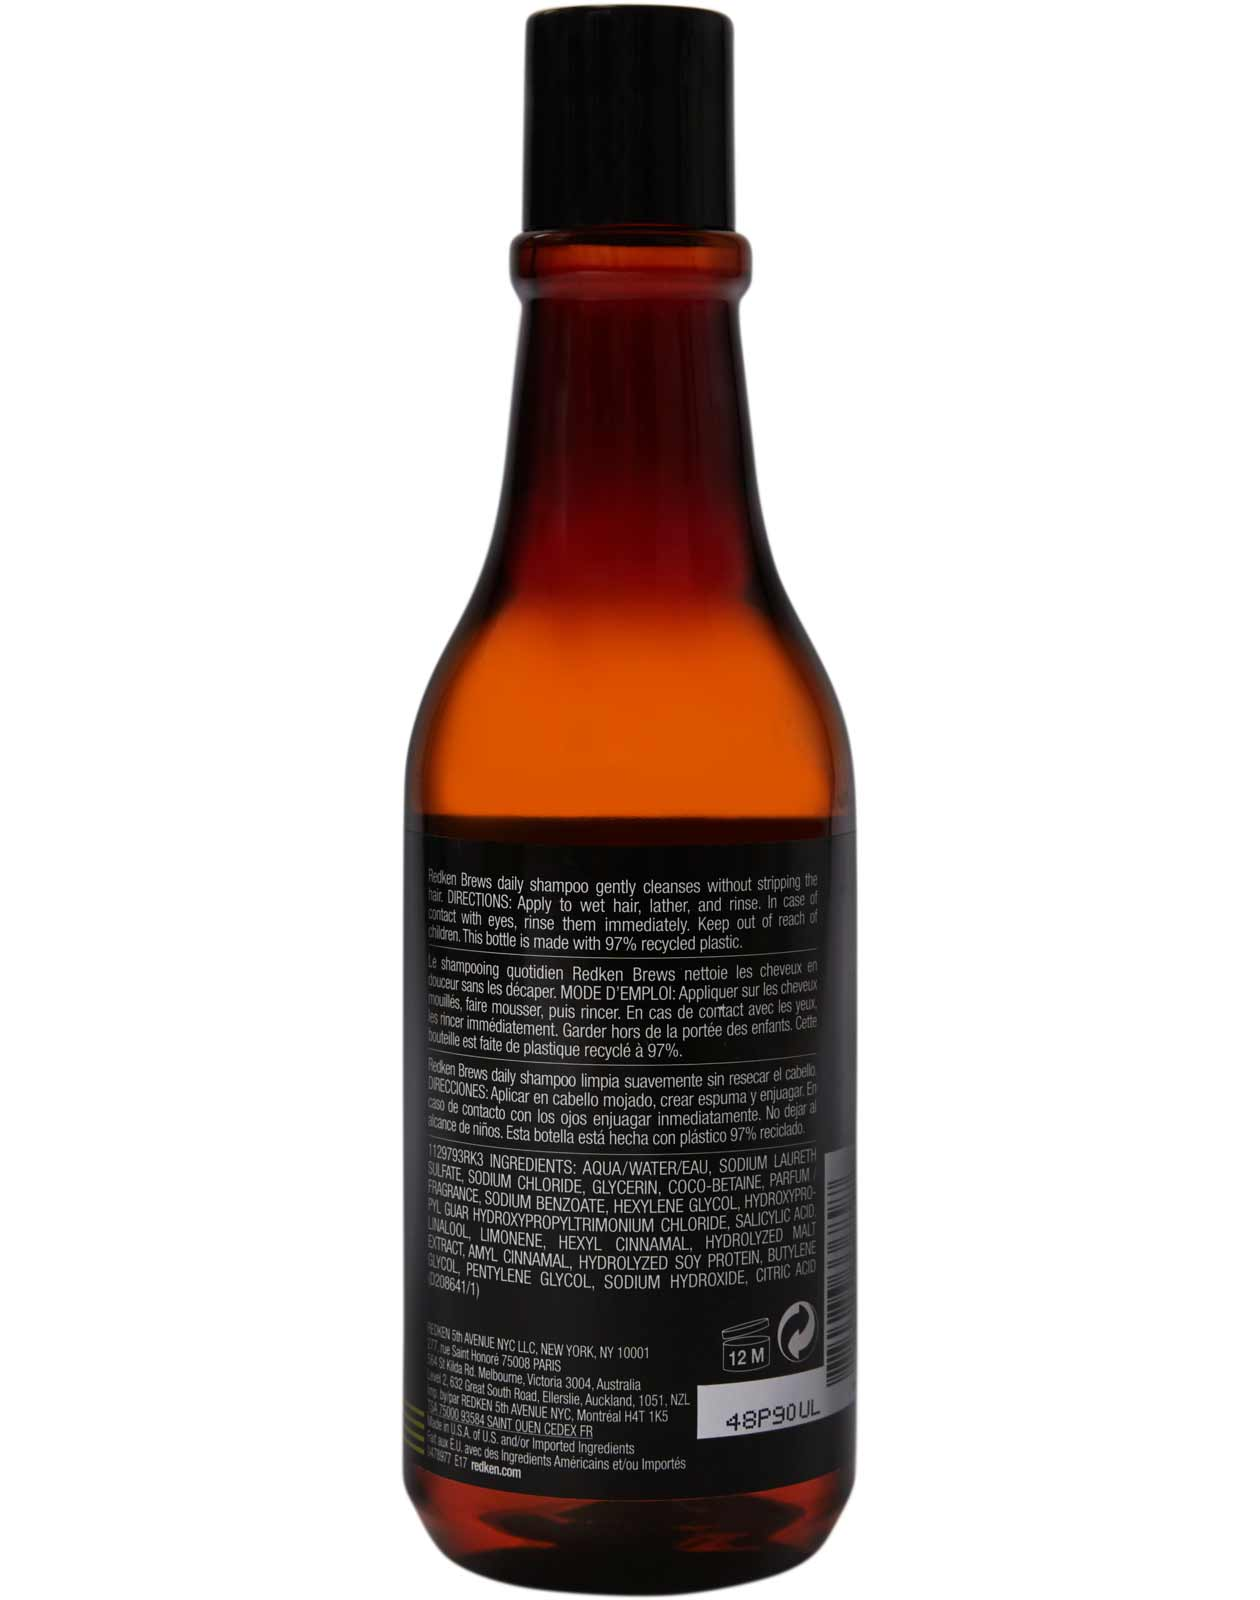 Redken Brews Daily Shampoo back 1260x1600.jpg